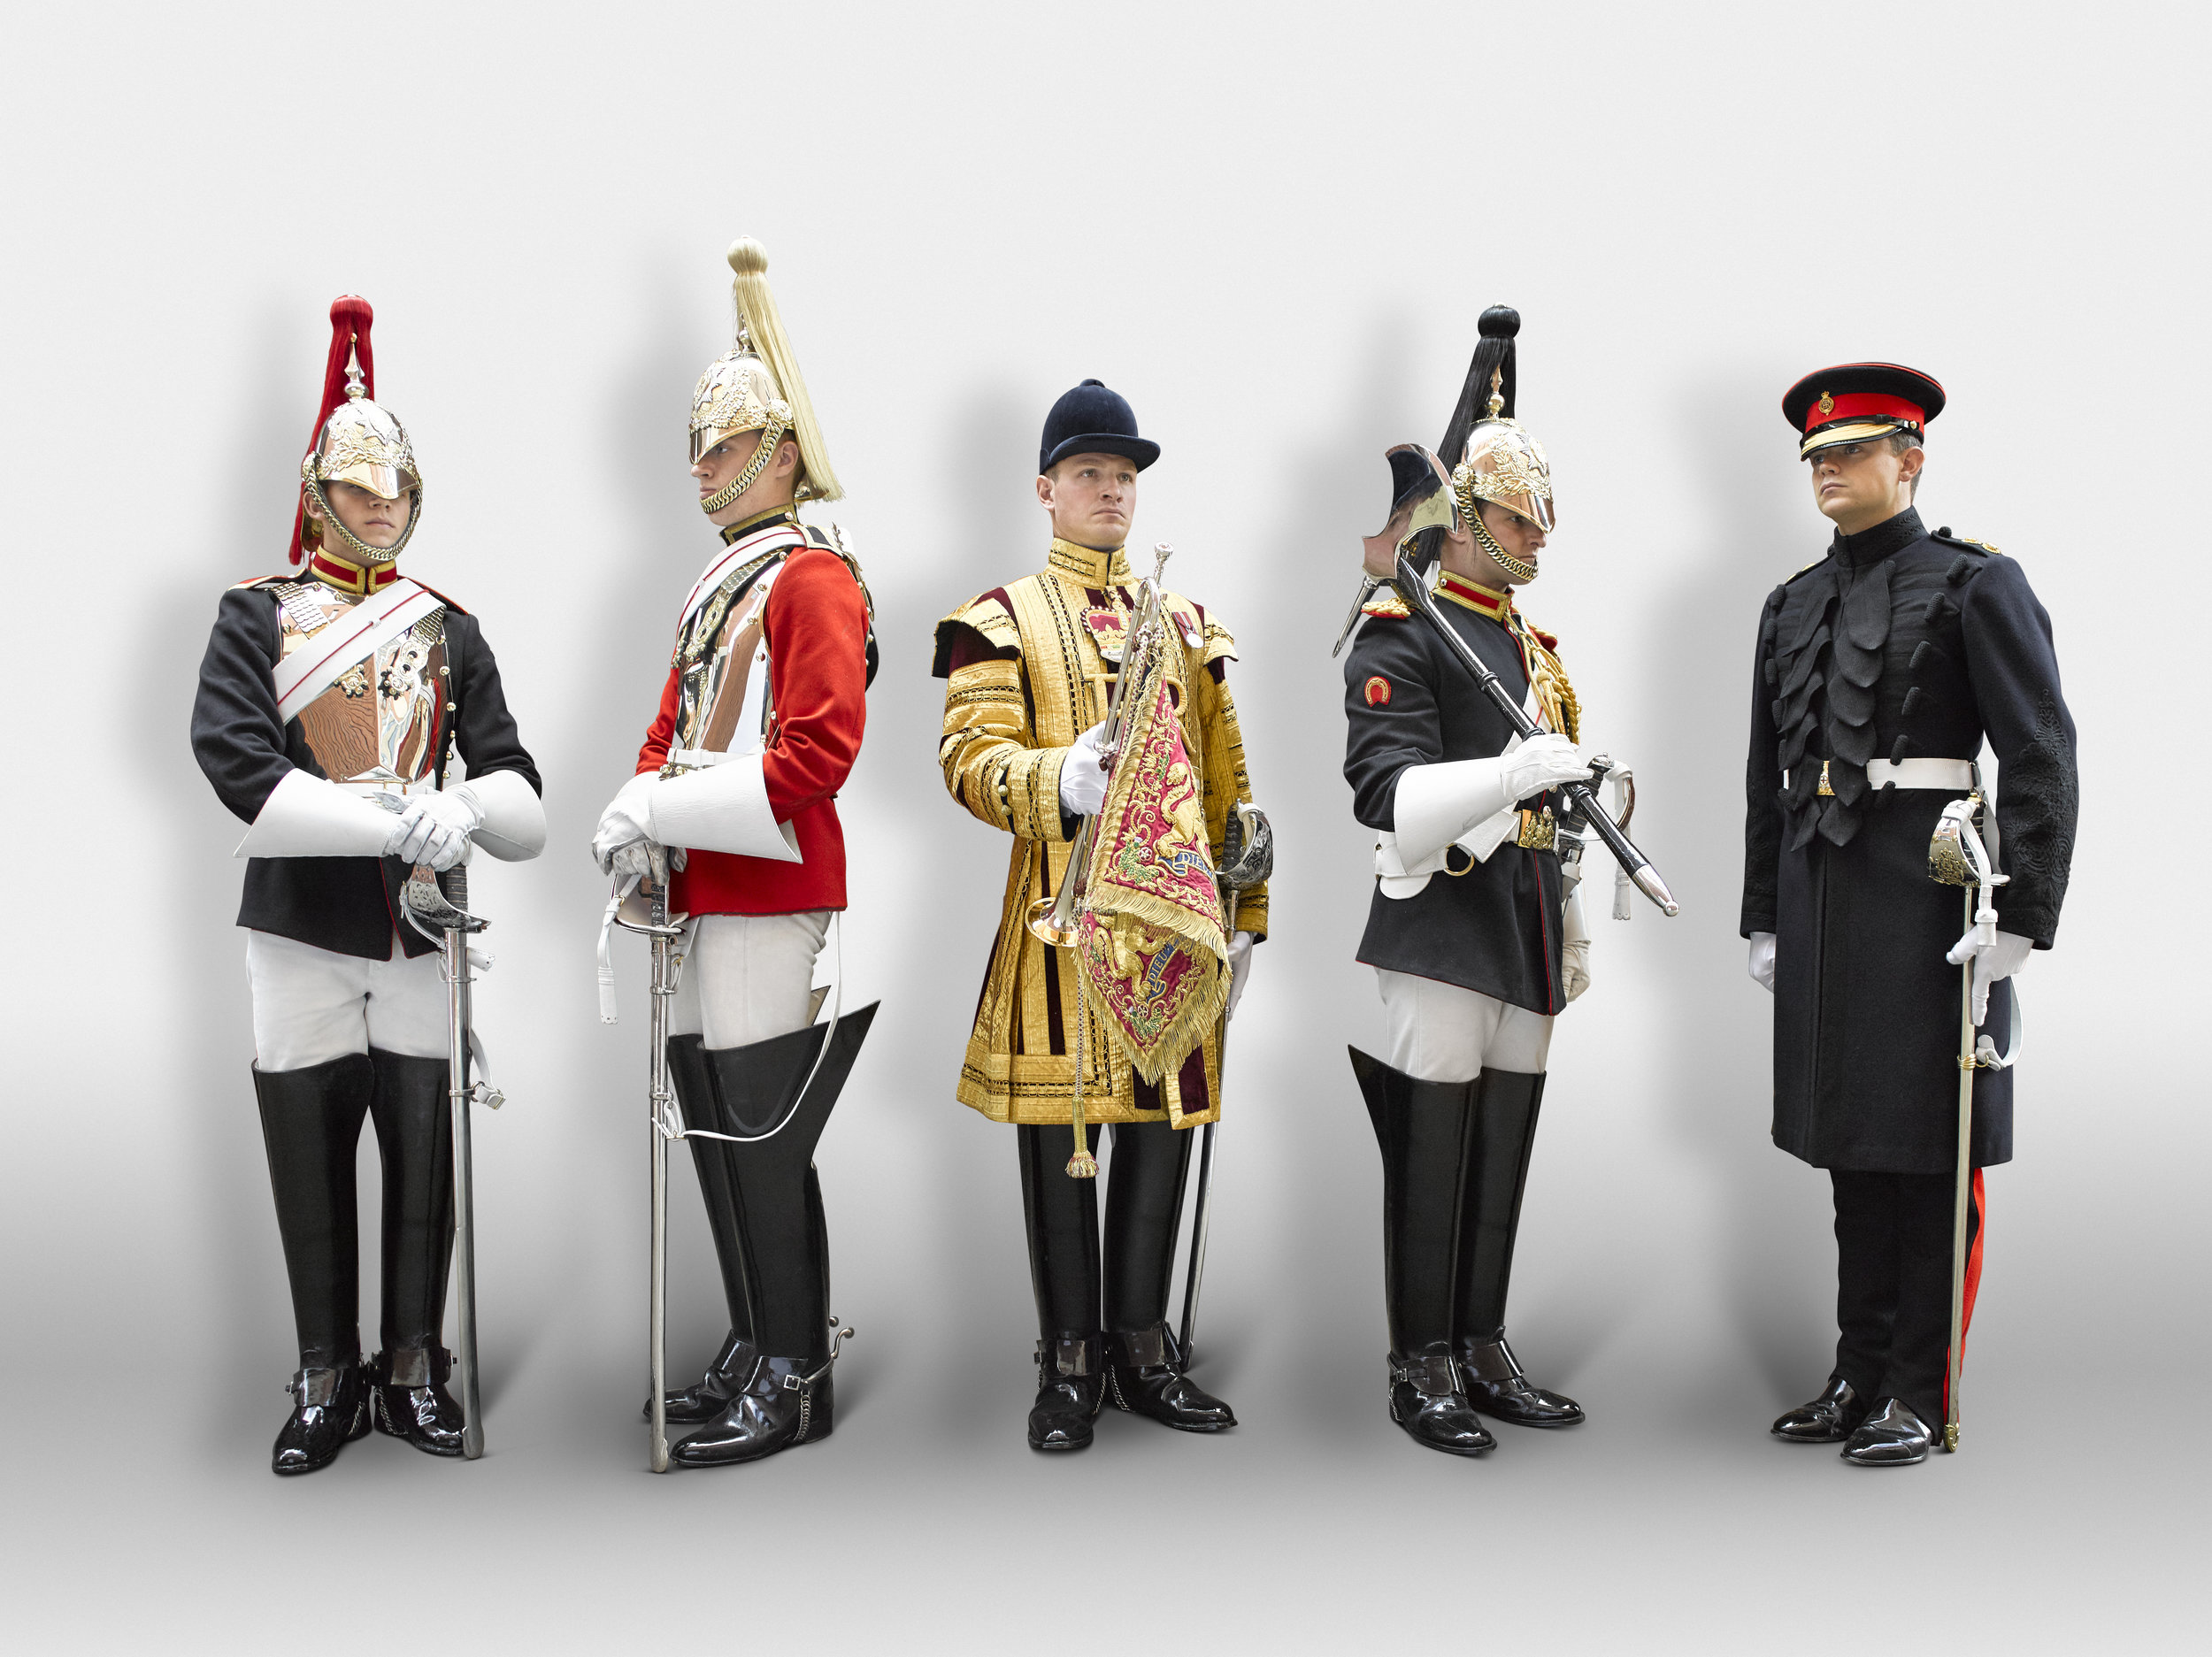 (Household Cavalry Mounted Regiment) Rory Lewis Photographer (London Military Portraiture 2016)